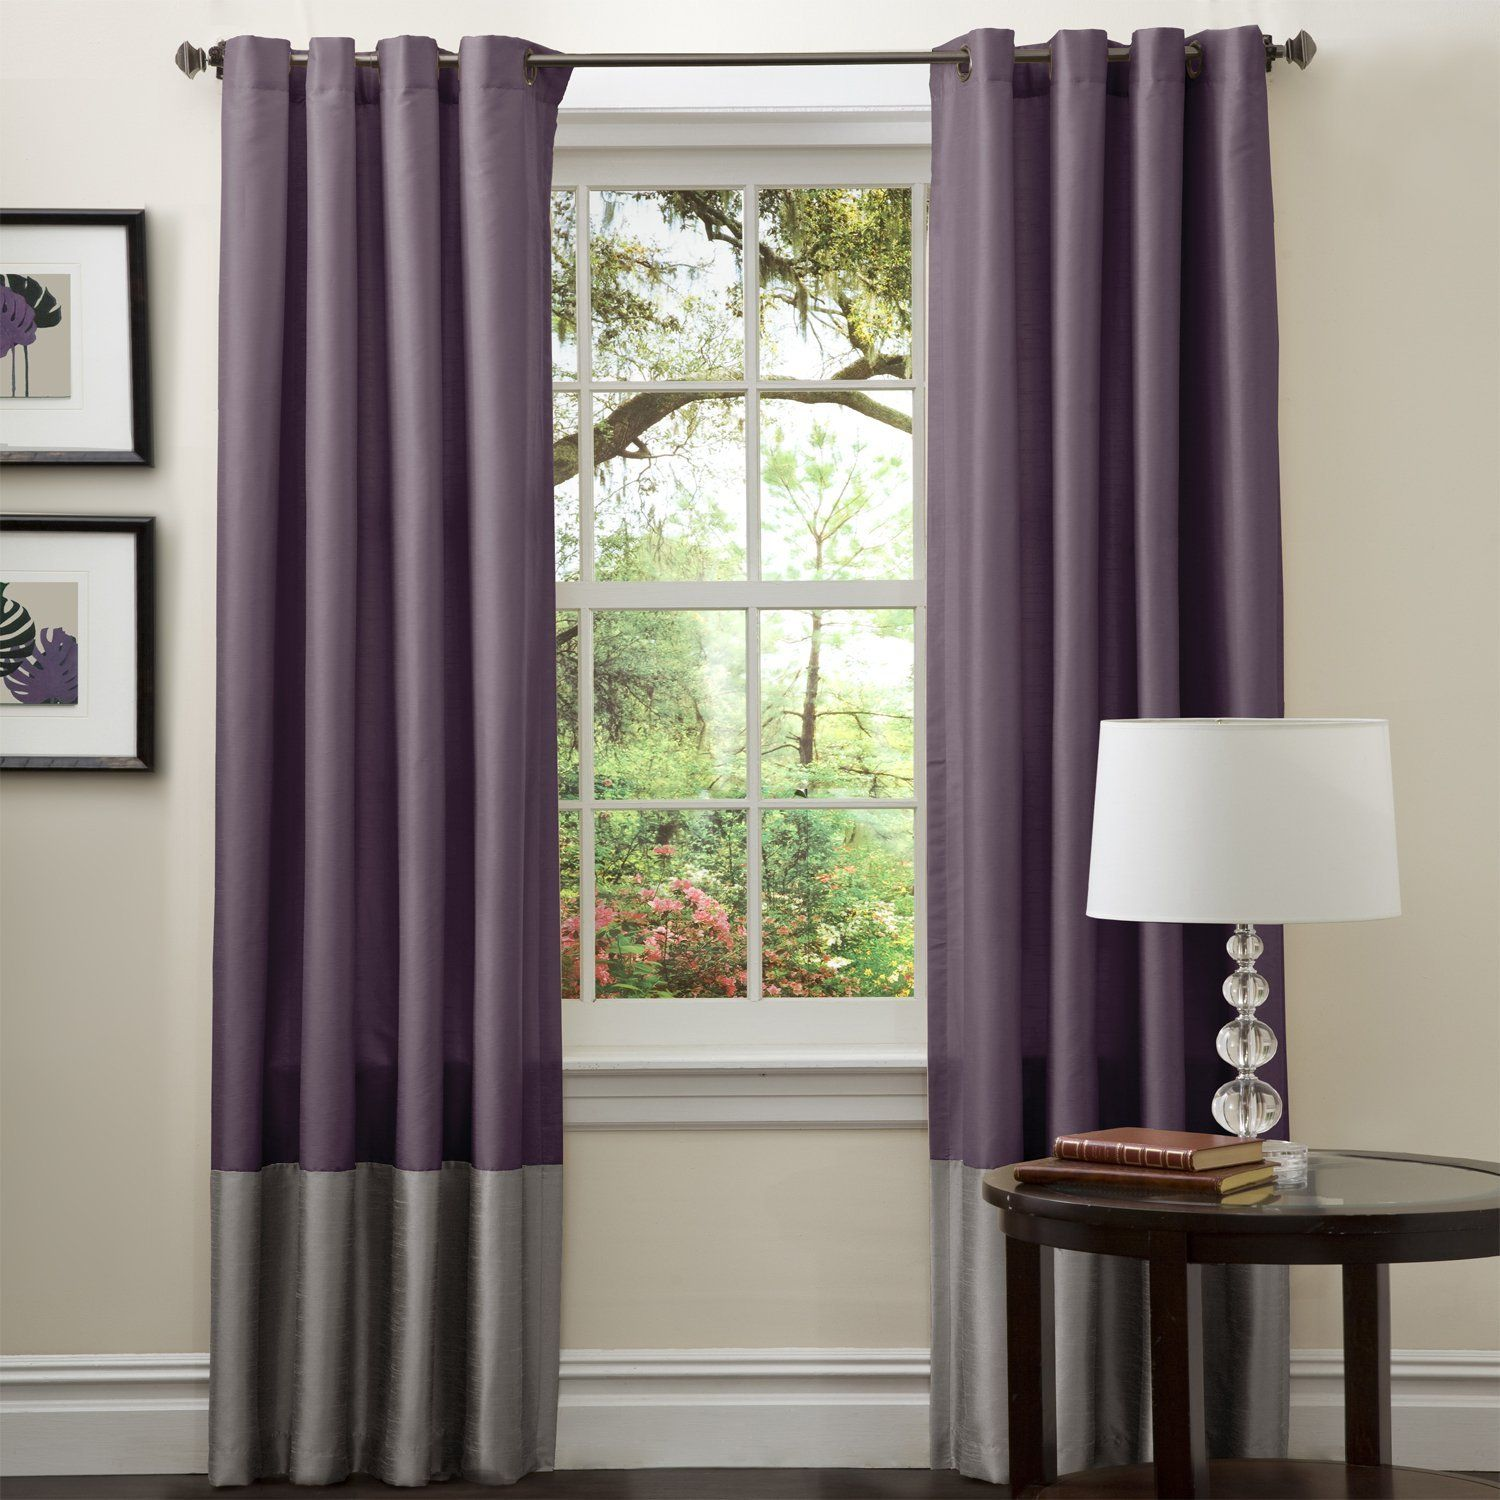 The fantastic warm shades in Plum curtains draperyroomideas